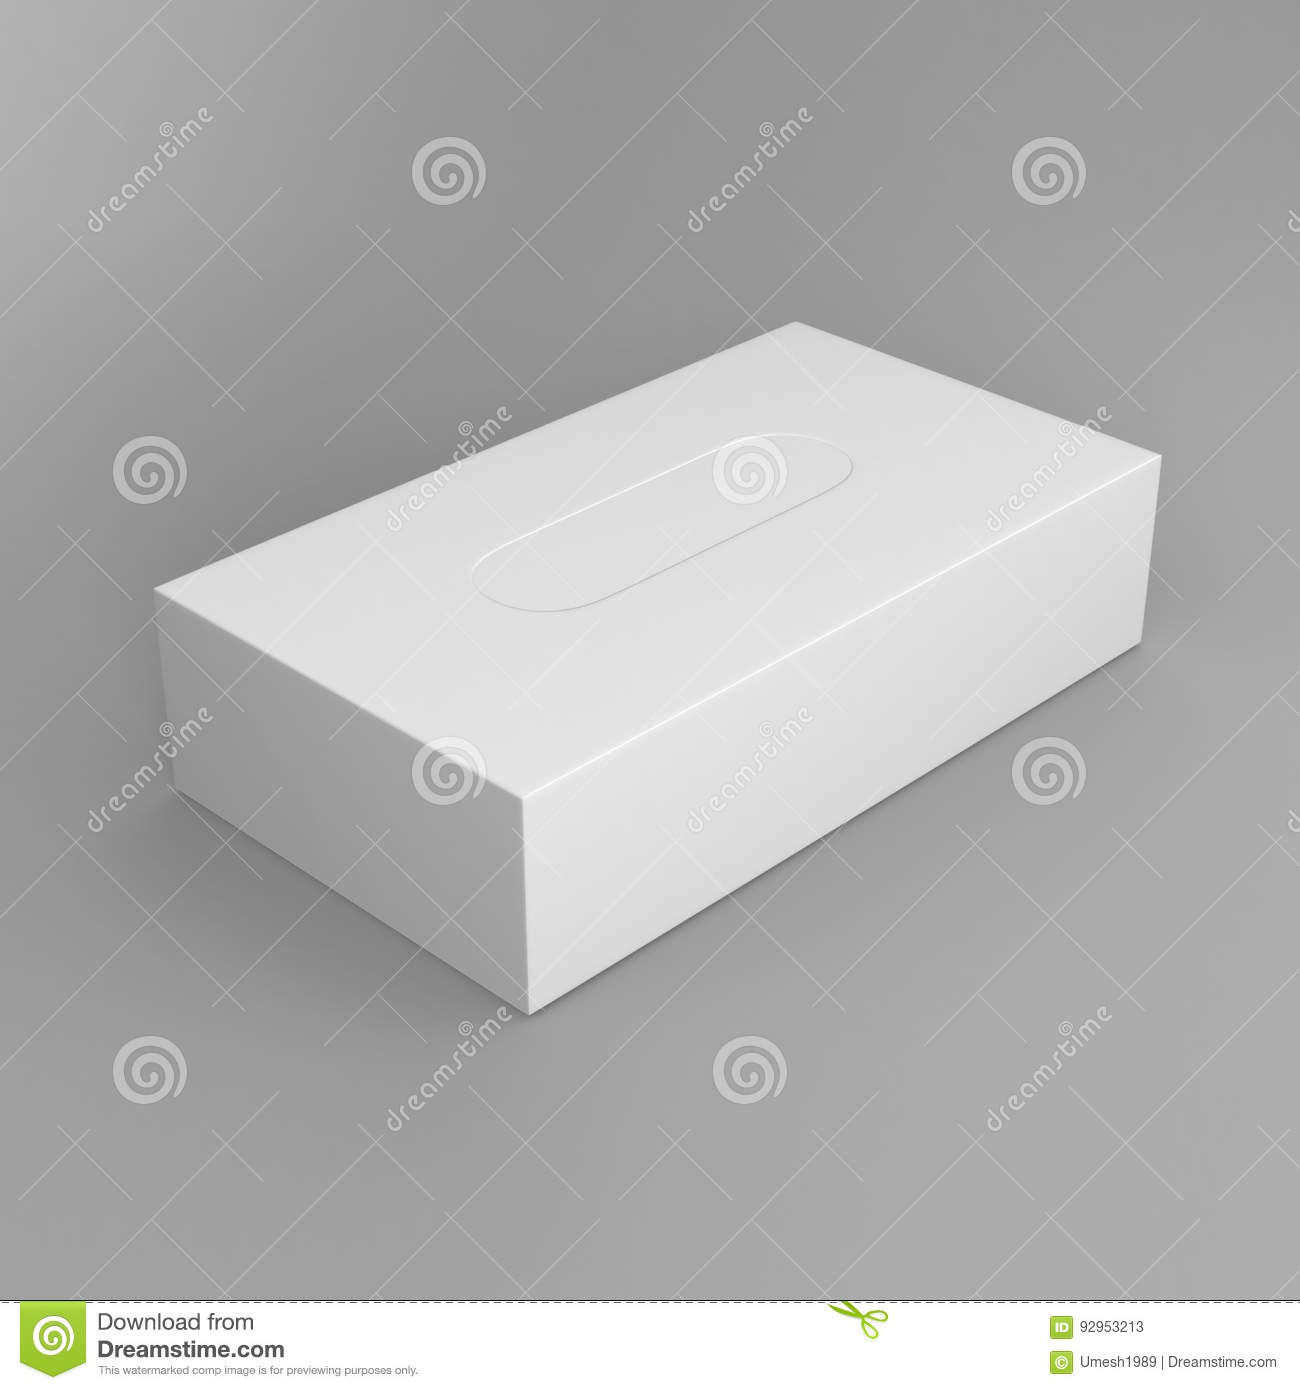 tissues cartoons illustrations vector stock images 710 pictures to download from. Black Bedroom Furniture Sets. Home Design Ideas